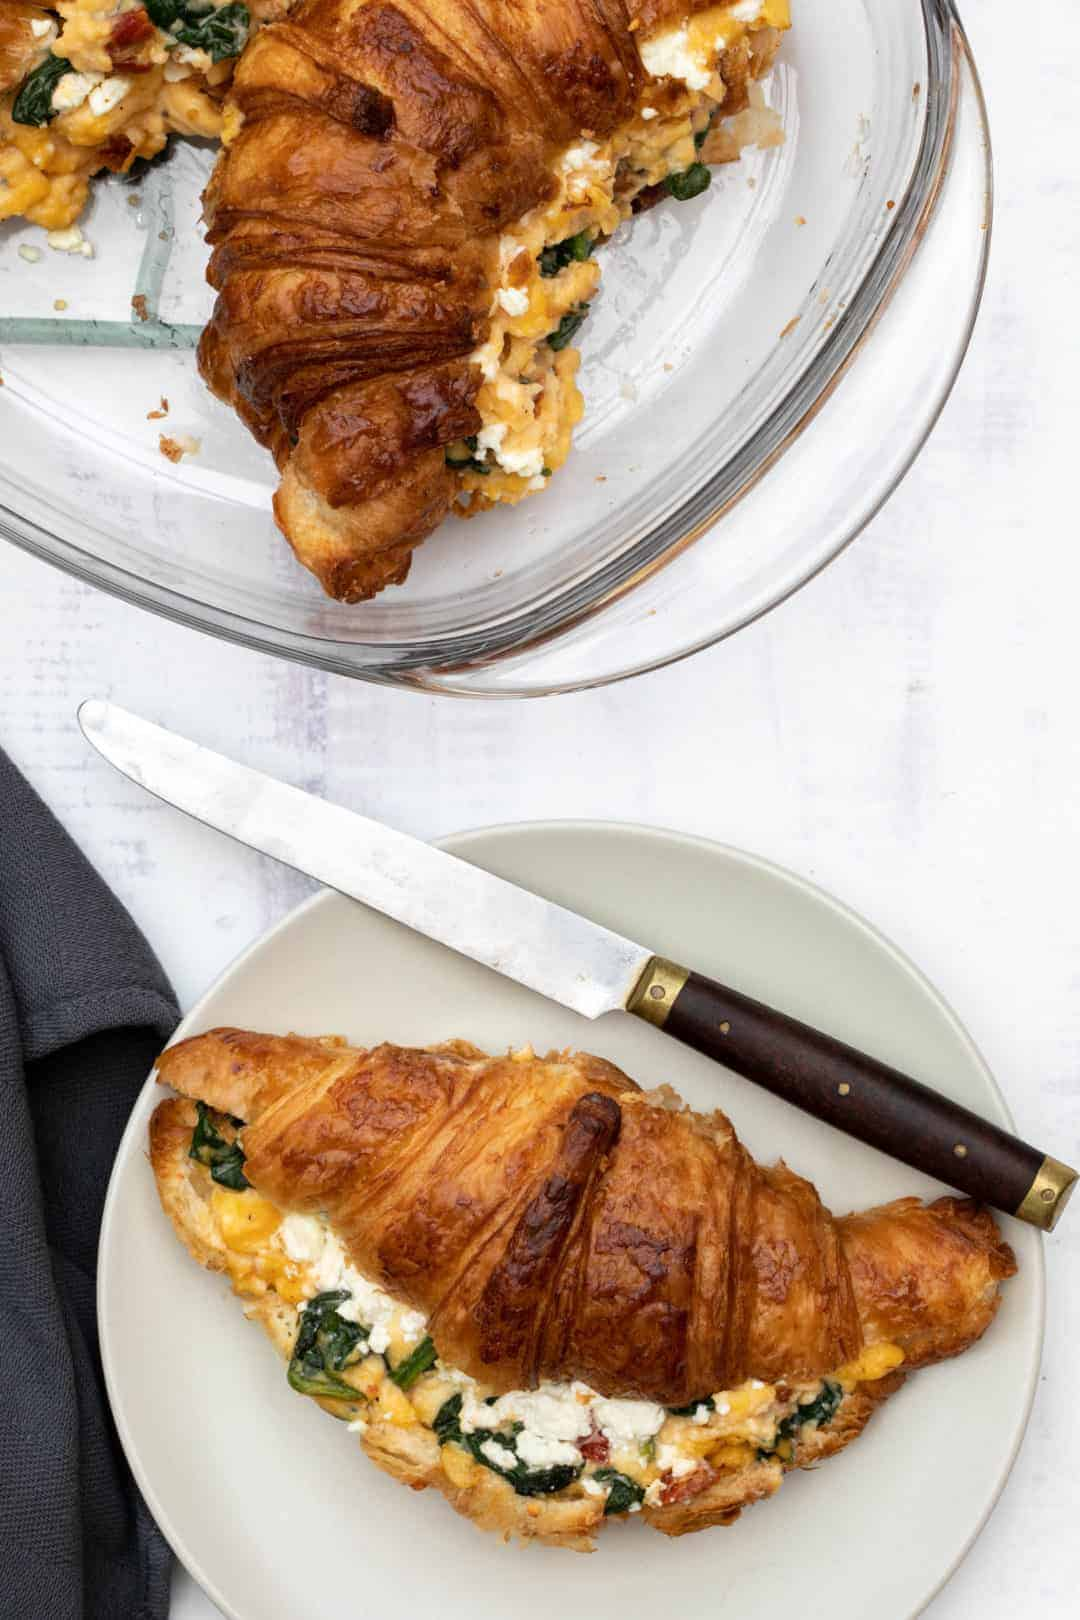 croissant breakfast sandwich on plate with knife and napkin and baking dish